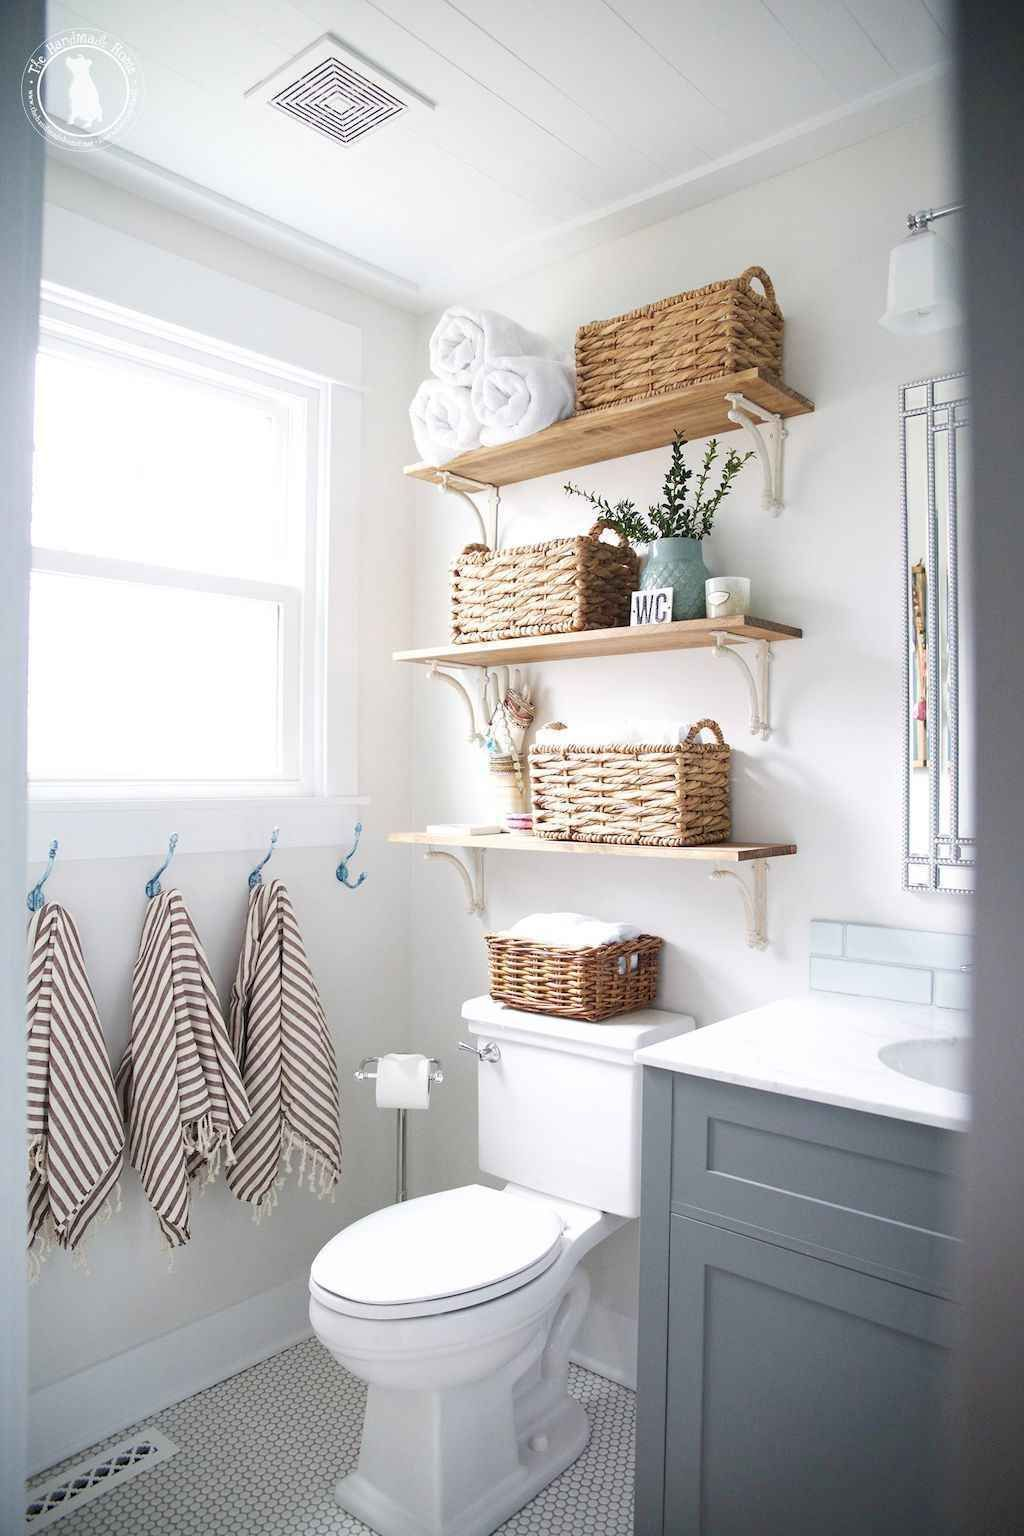 19 Awesome Small Bathroom Remodel Ideas - HomeIdeas.co